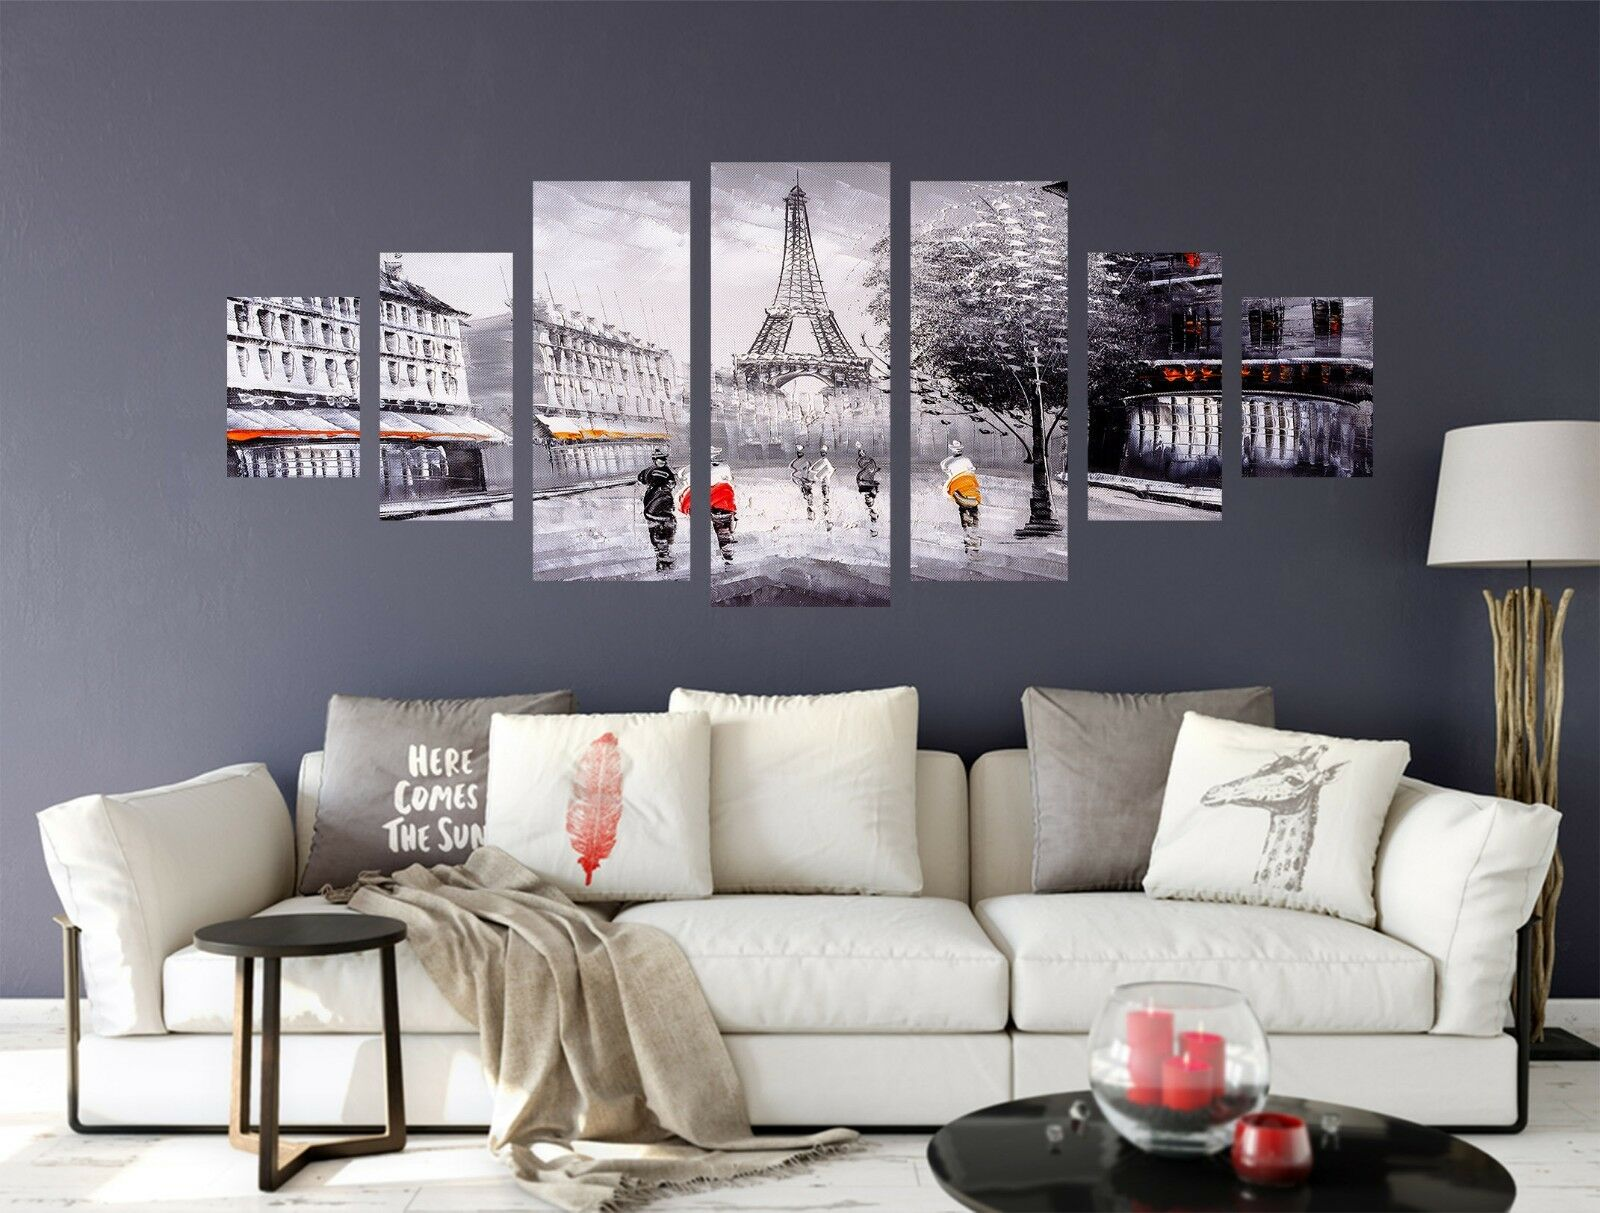 3D Street Eiffel 676 Unframed Print Wall Paper Decal Wall Deco Indoor AJ Wall